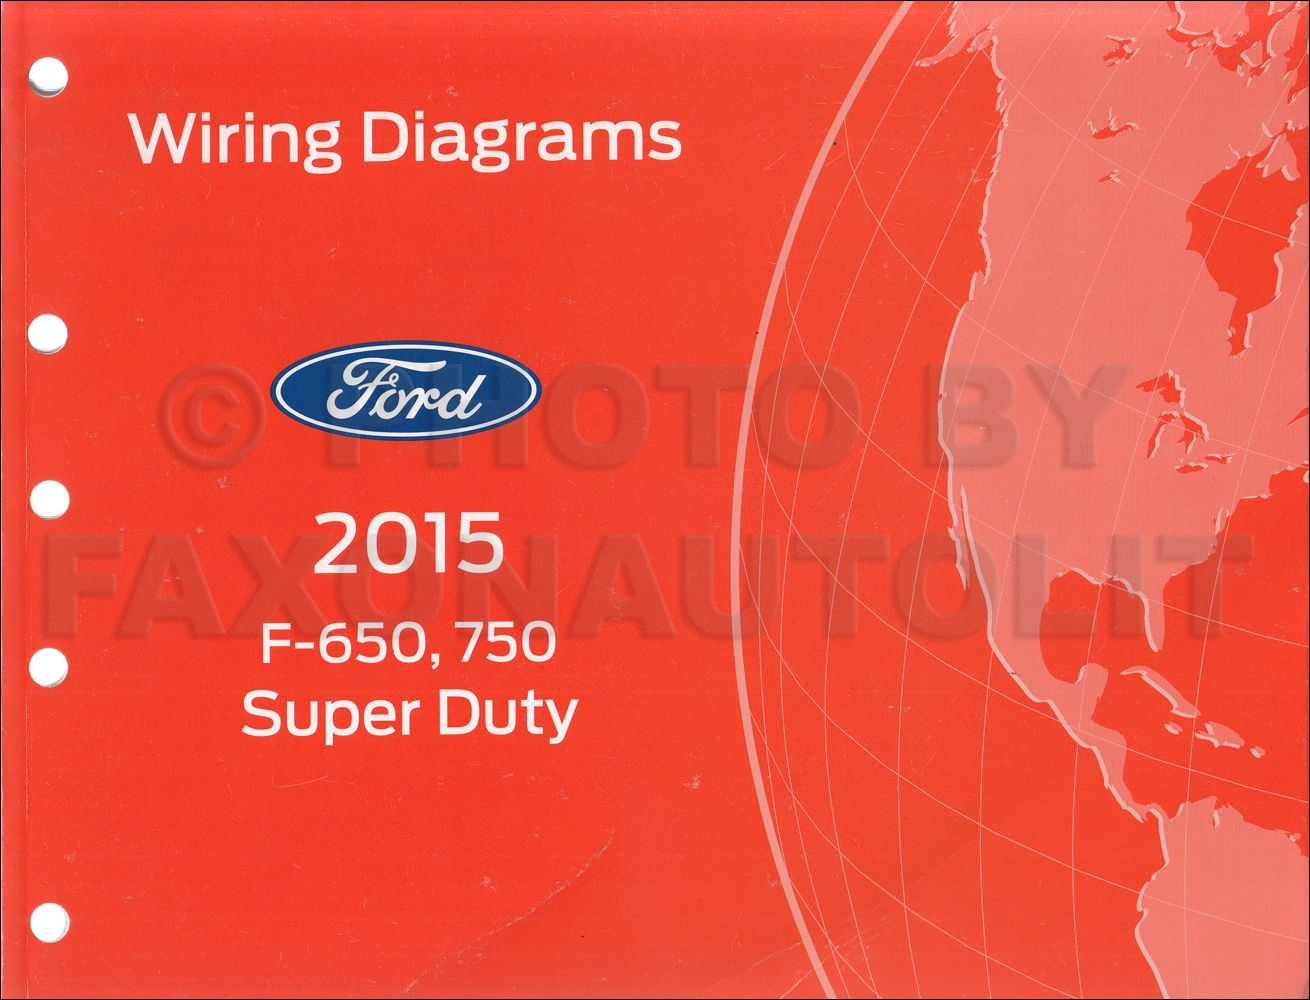 2015 ford f650 wiring diagram 2015 wiring diagrams cars